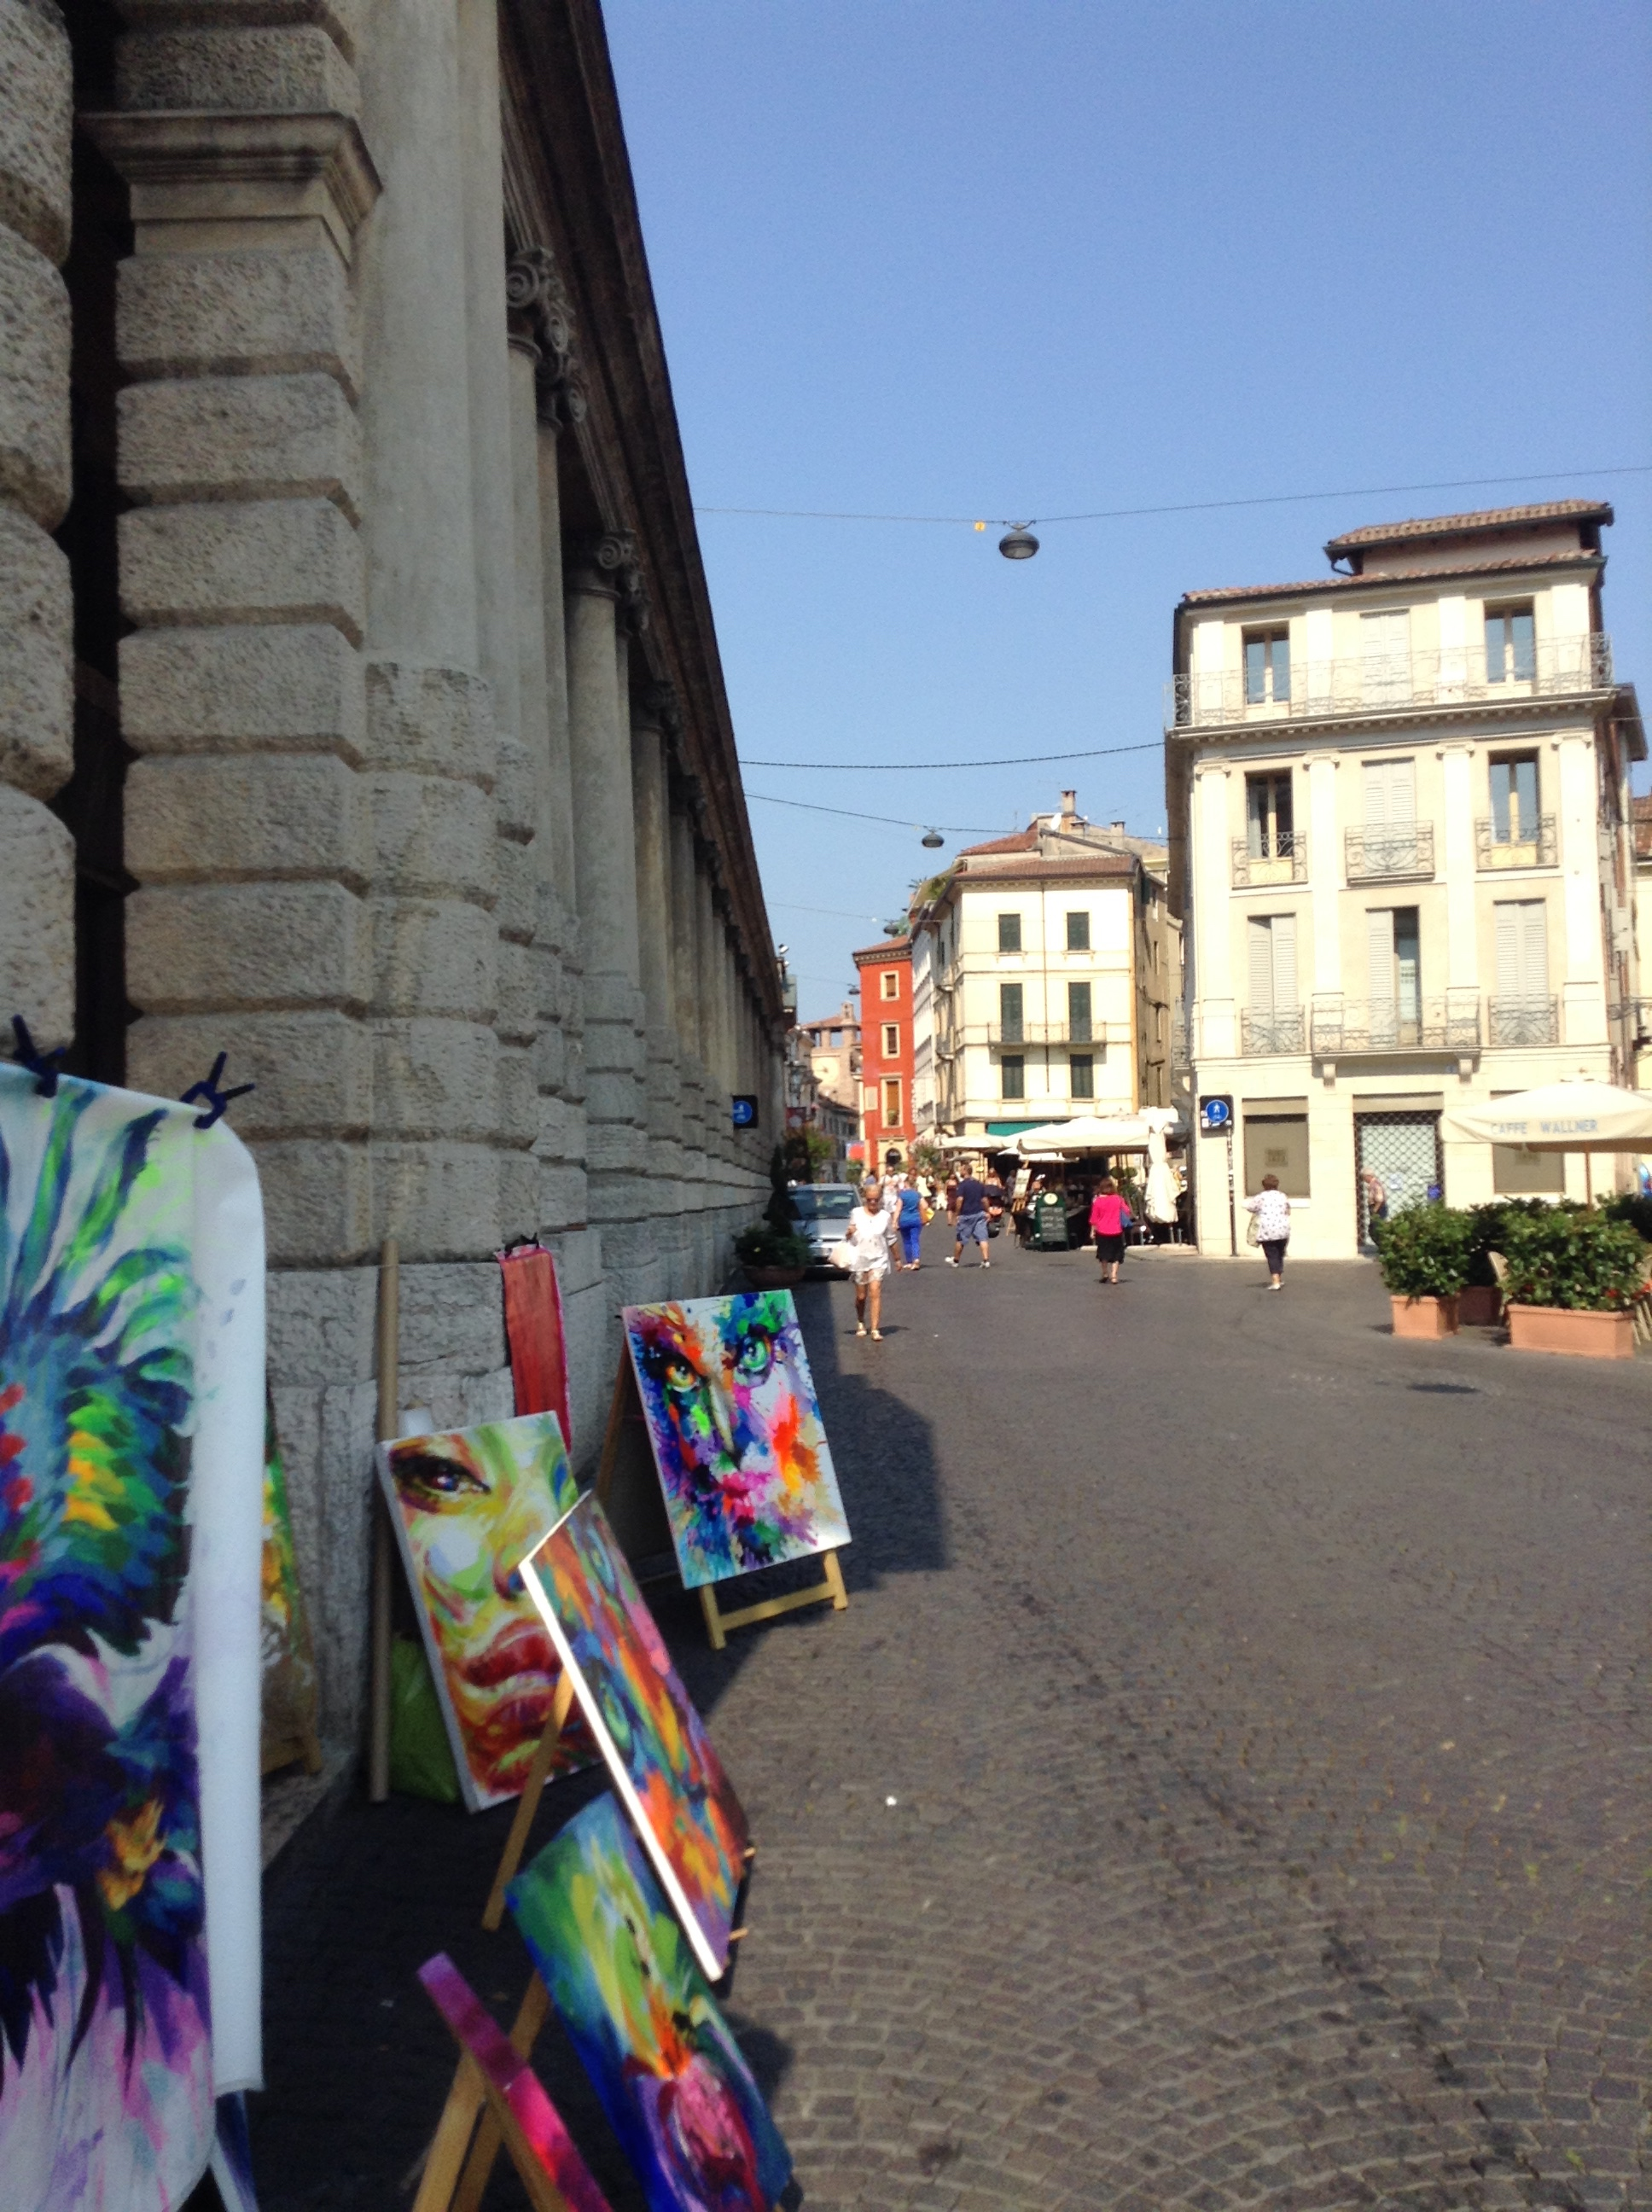 And for as long as the world survives, there will be a place for new art. (Piazza Bra, Verona)